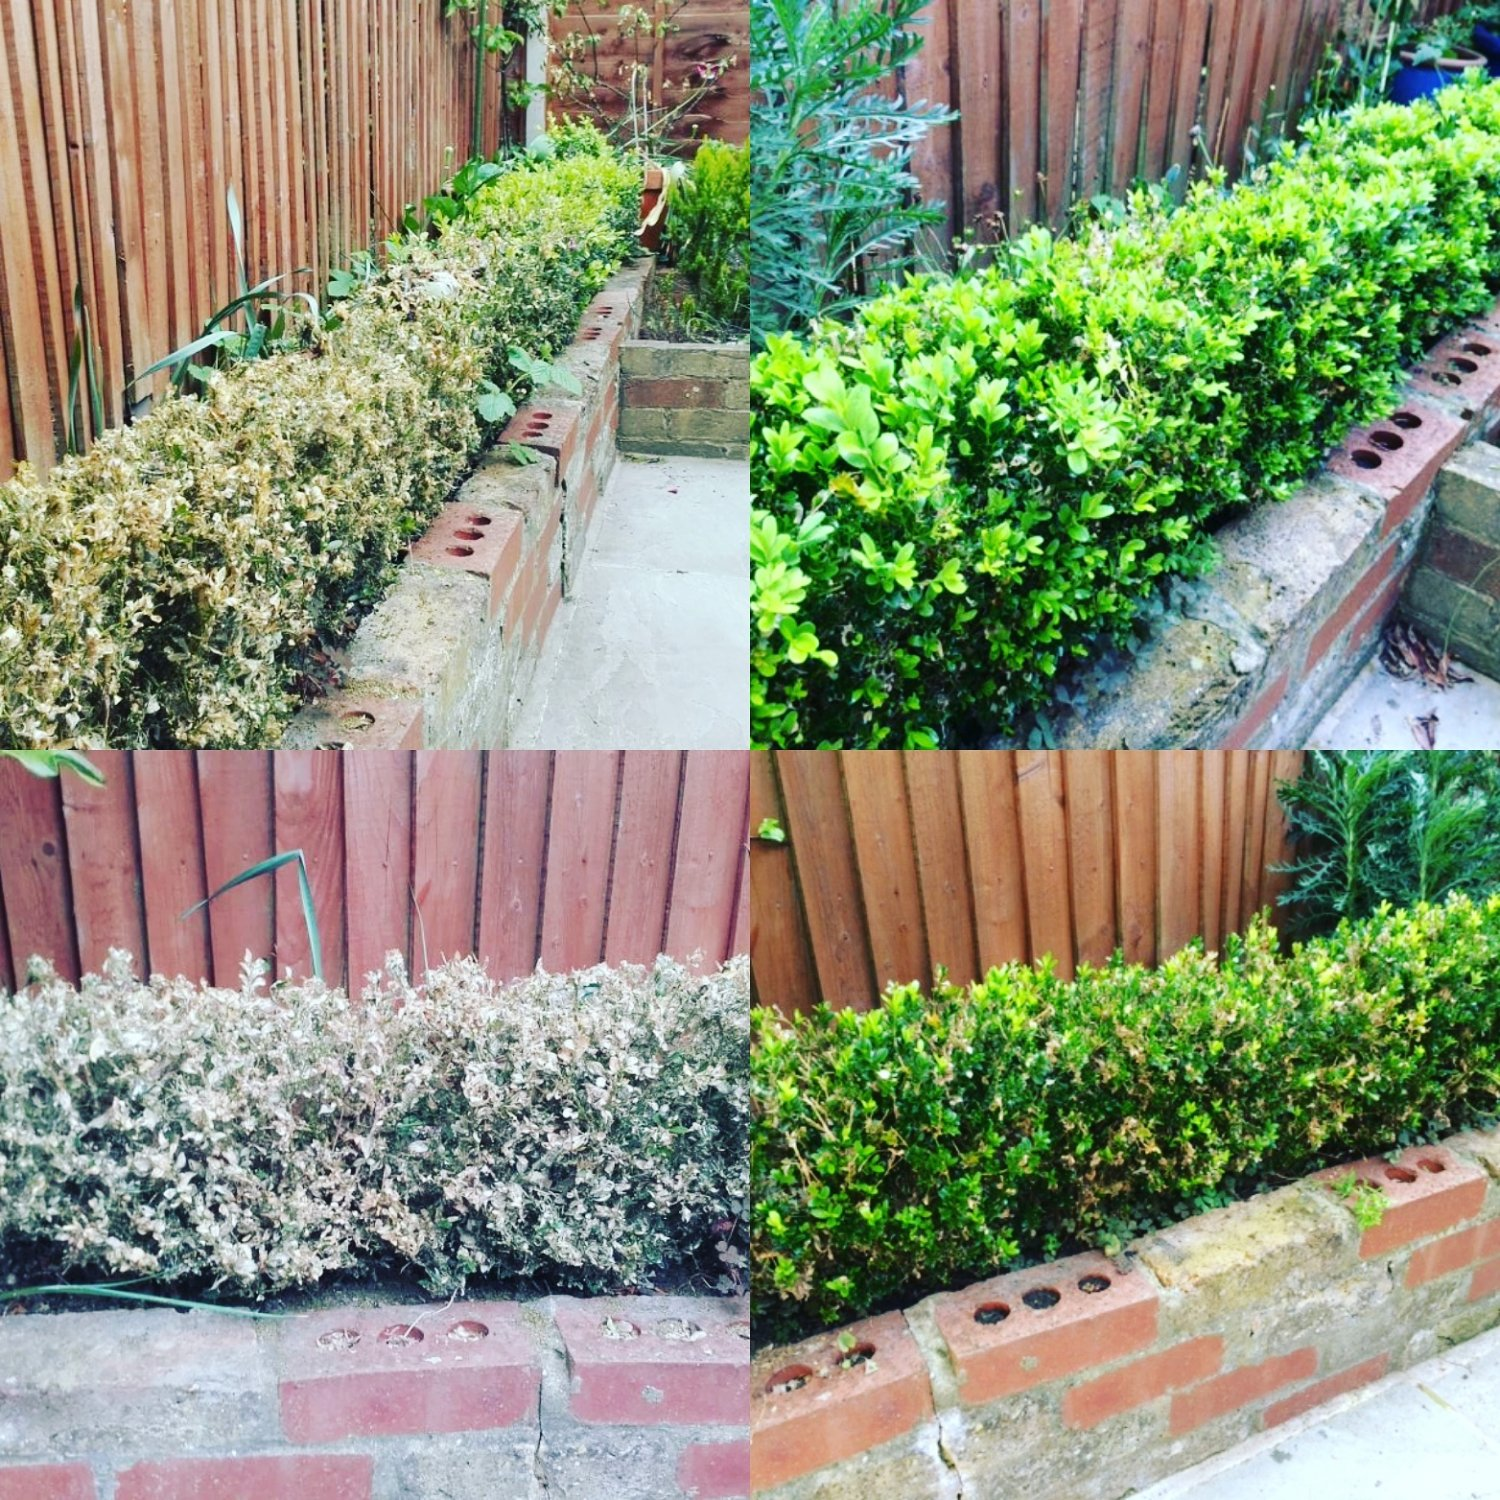 Box hedge recovering well after infestation